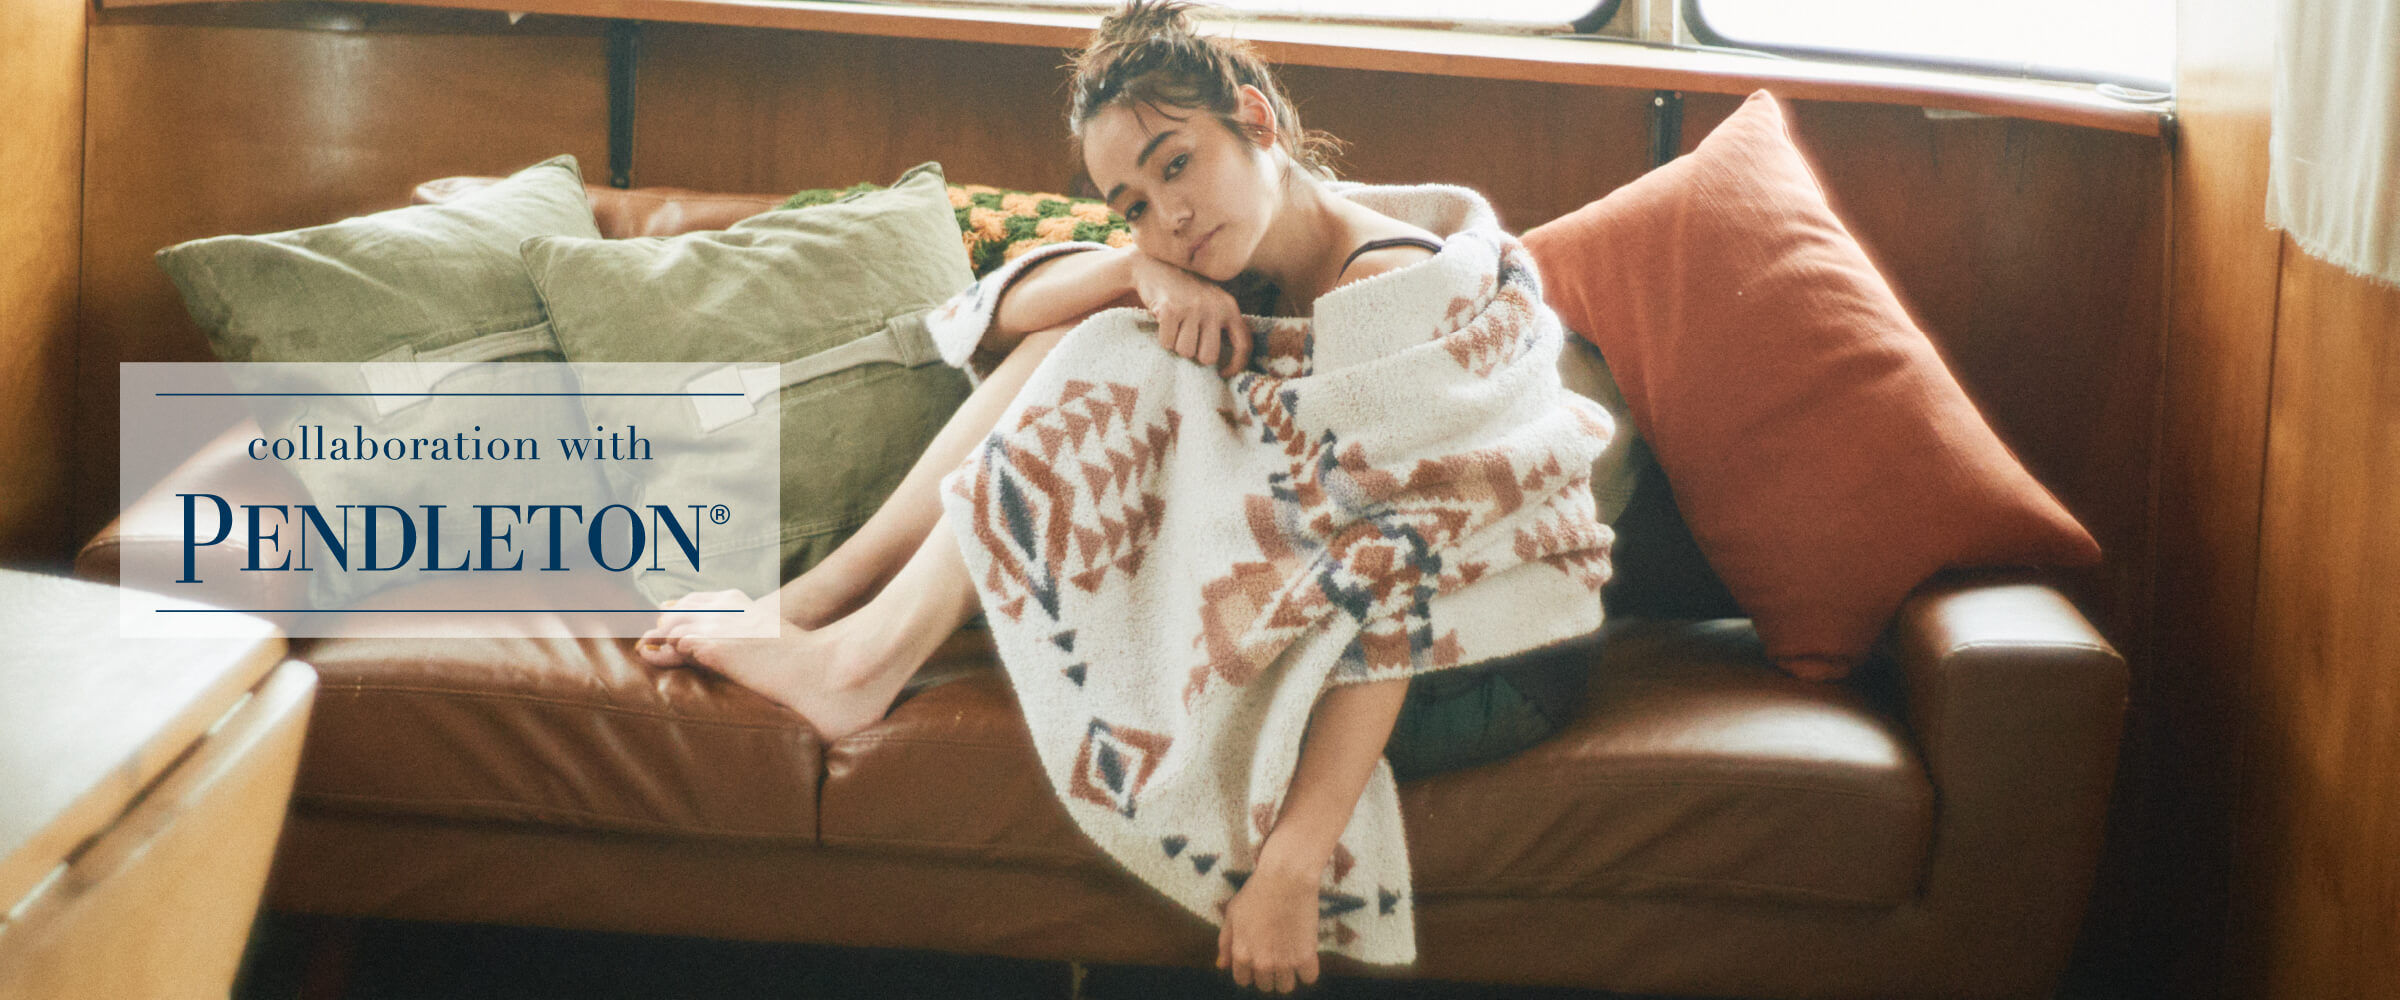 collaboration with PENDLETON®